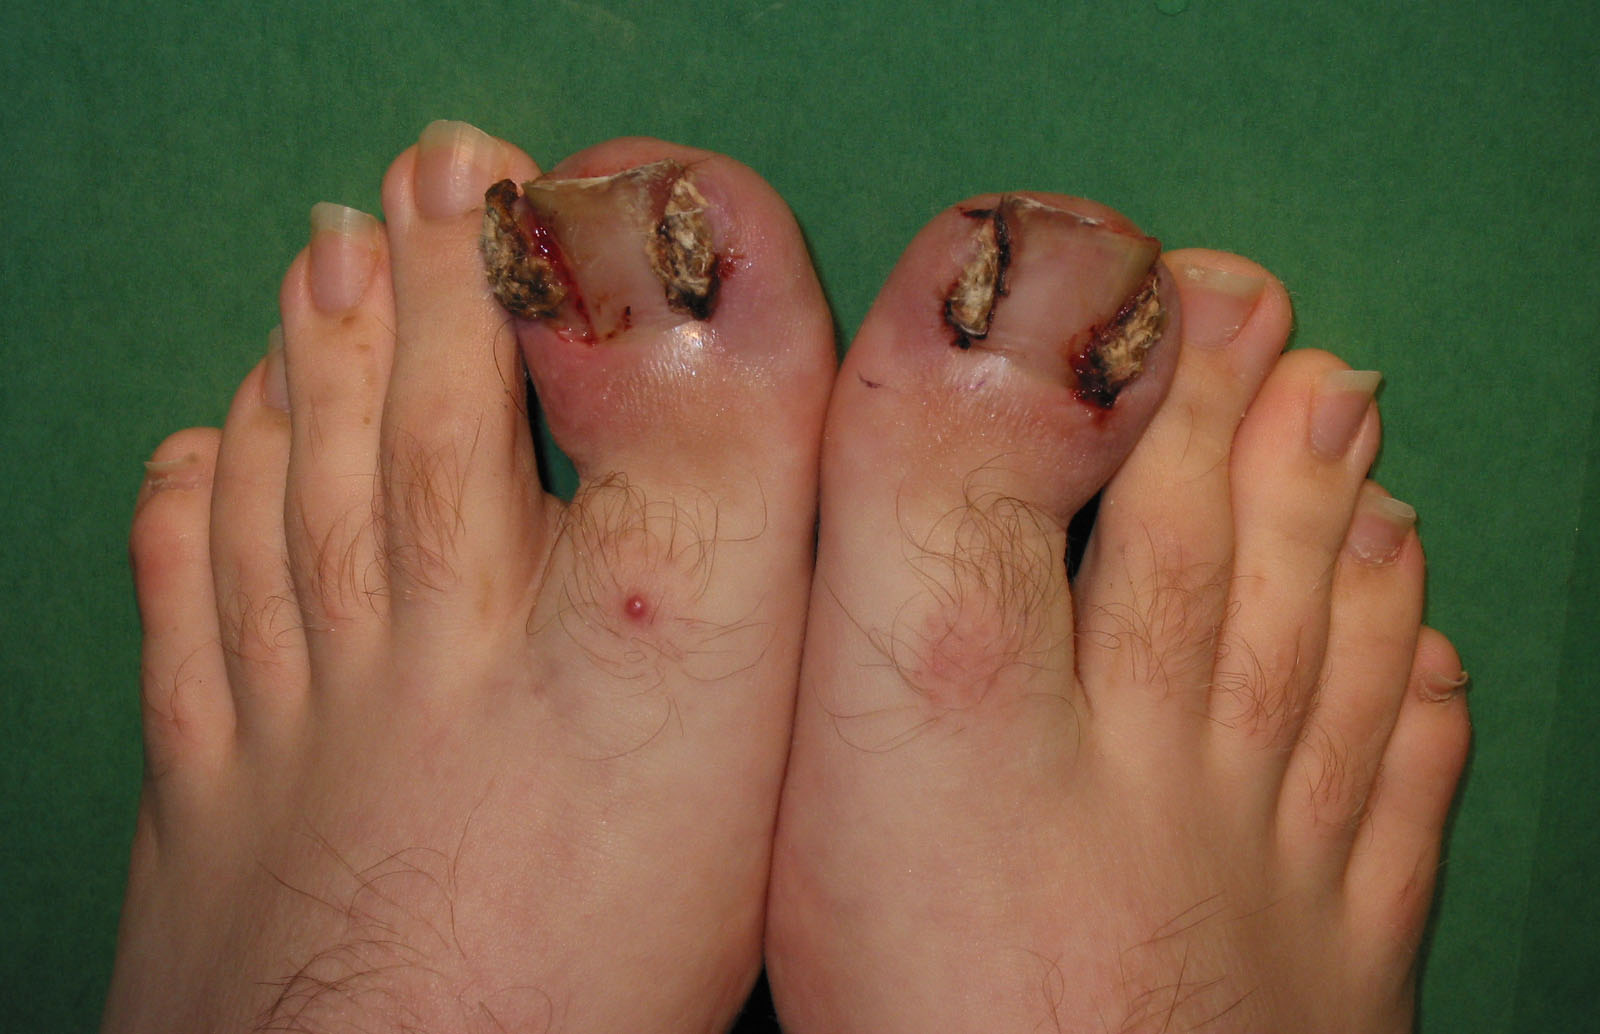 Surgical treatment of ingrown toenails - Wikiwand